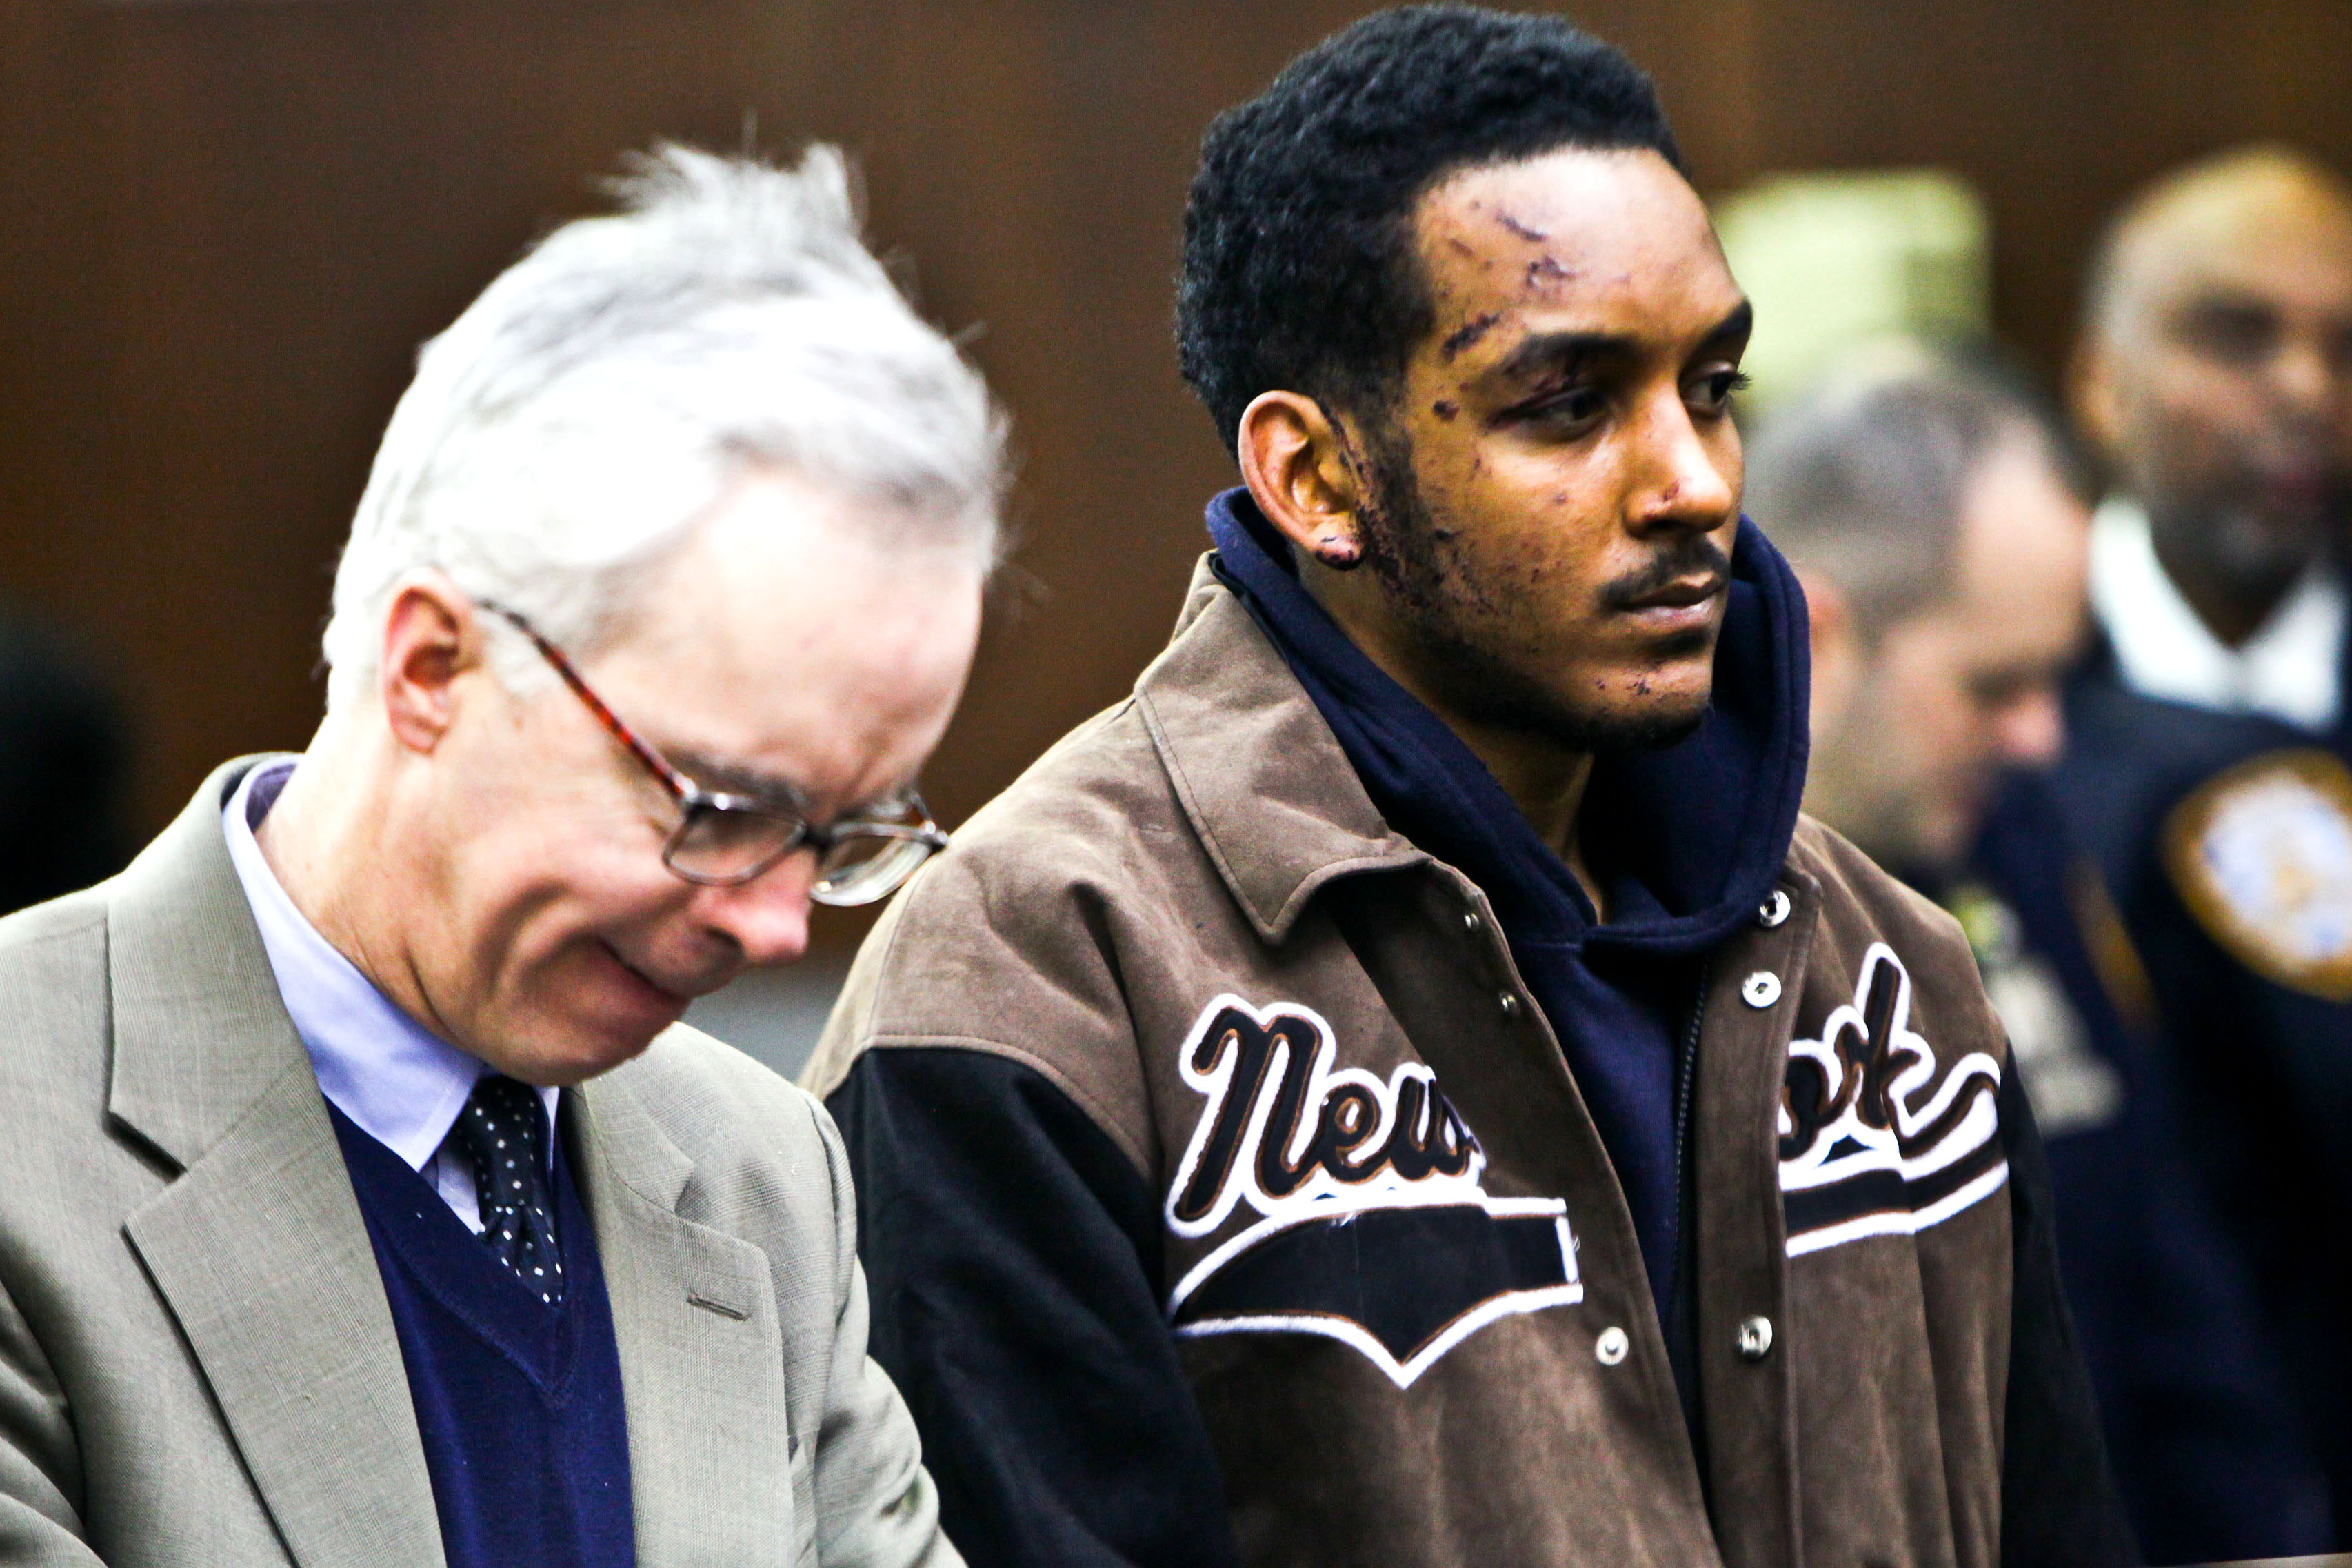 Domonic Whilby the driver that killed MTA bus driver is arraigned at Manhattan Criminal Court on Thursday, February 13, 2014.